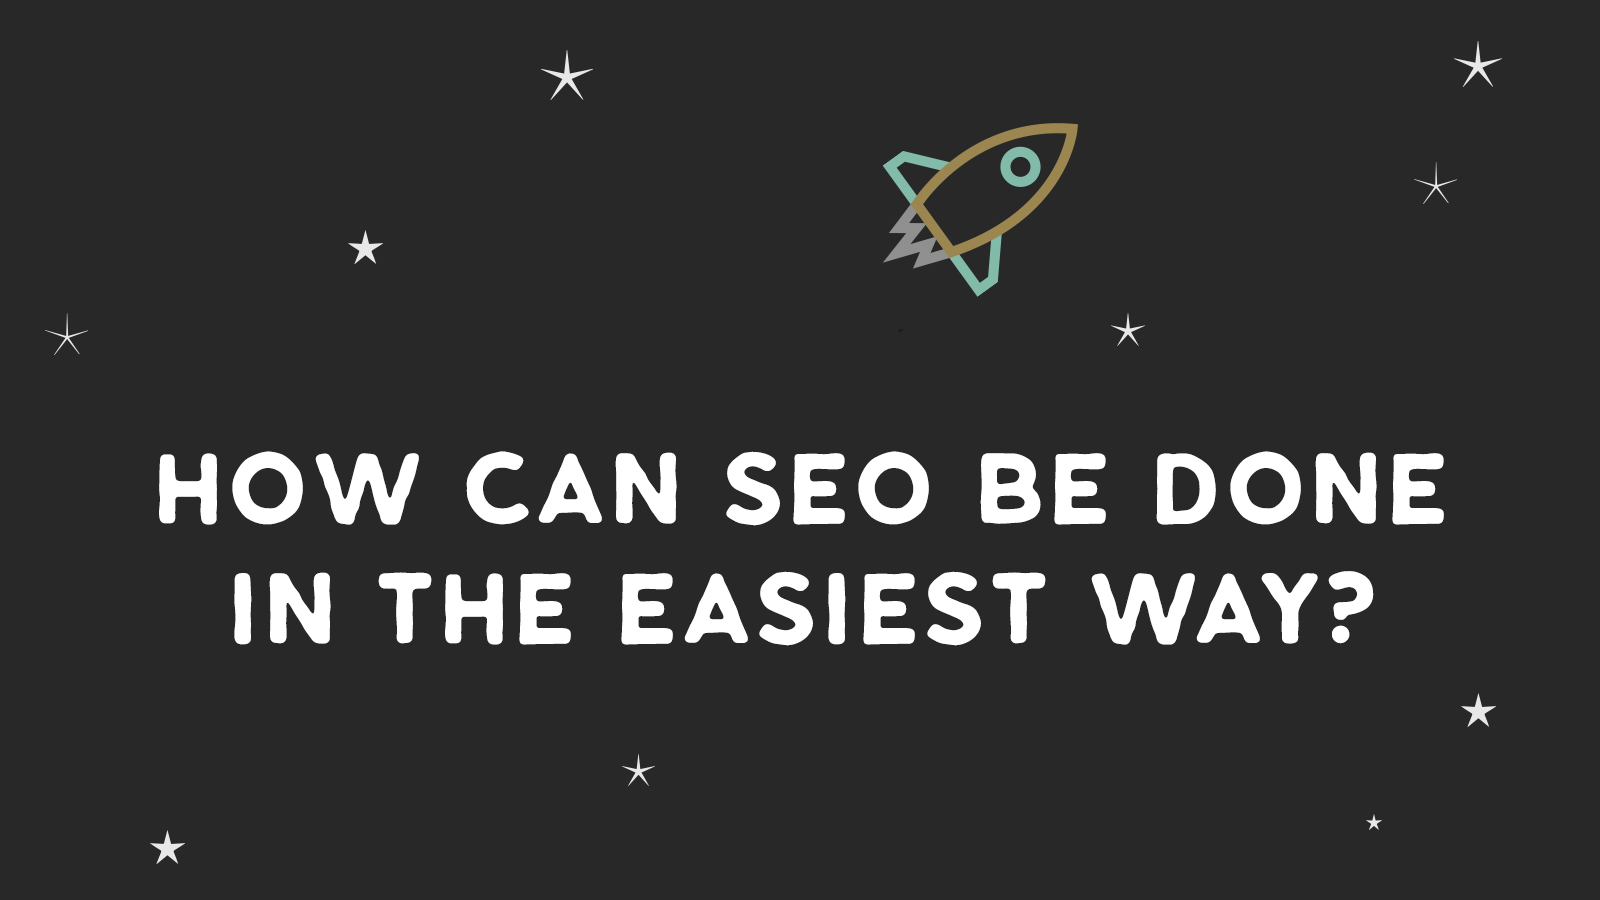 How can SEO be done in the easiest way?